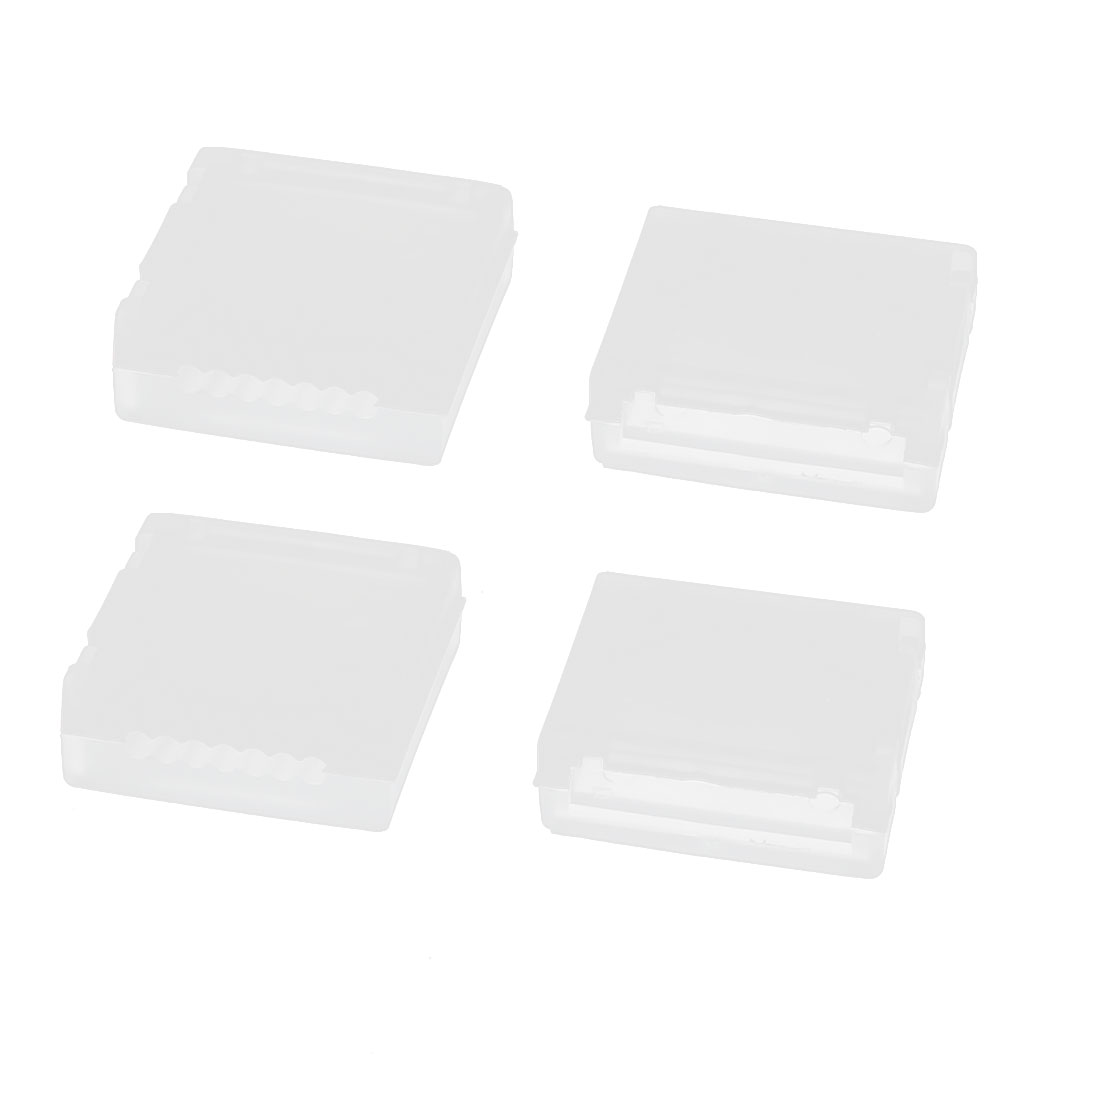 4 Pcs 22.2V 6S RC Lipo Battery White Plastic Balance Charge Protector AB Clip Buckle Button